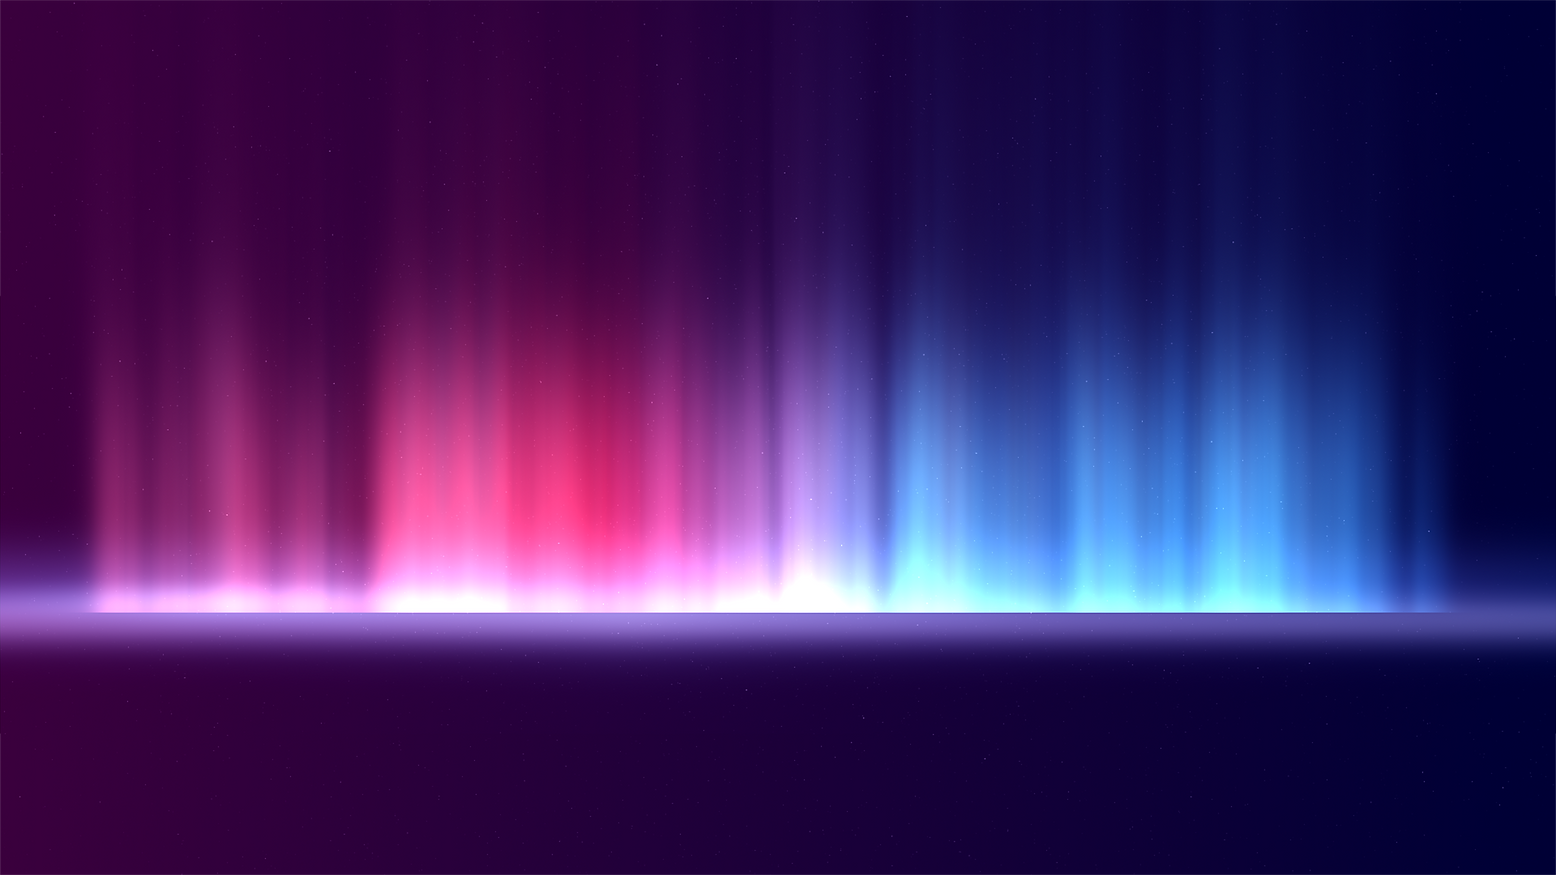 abstract-1780378_1920.png